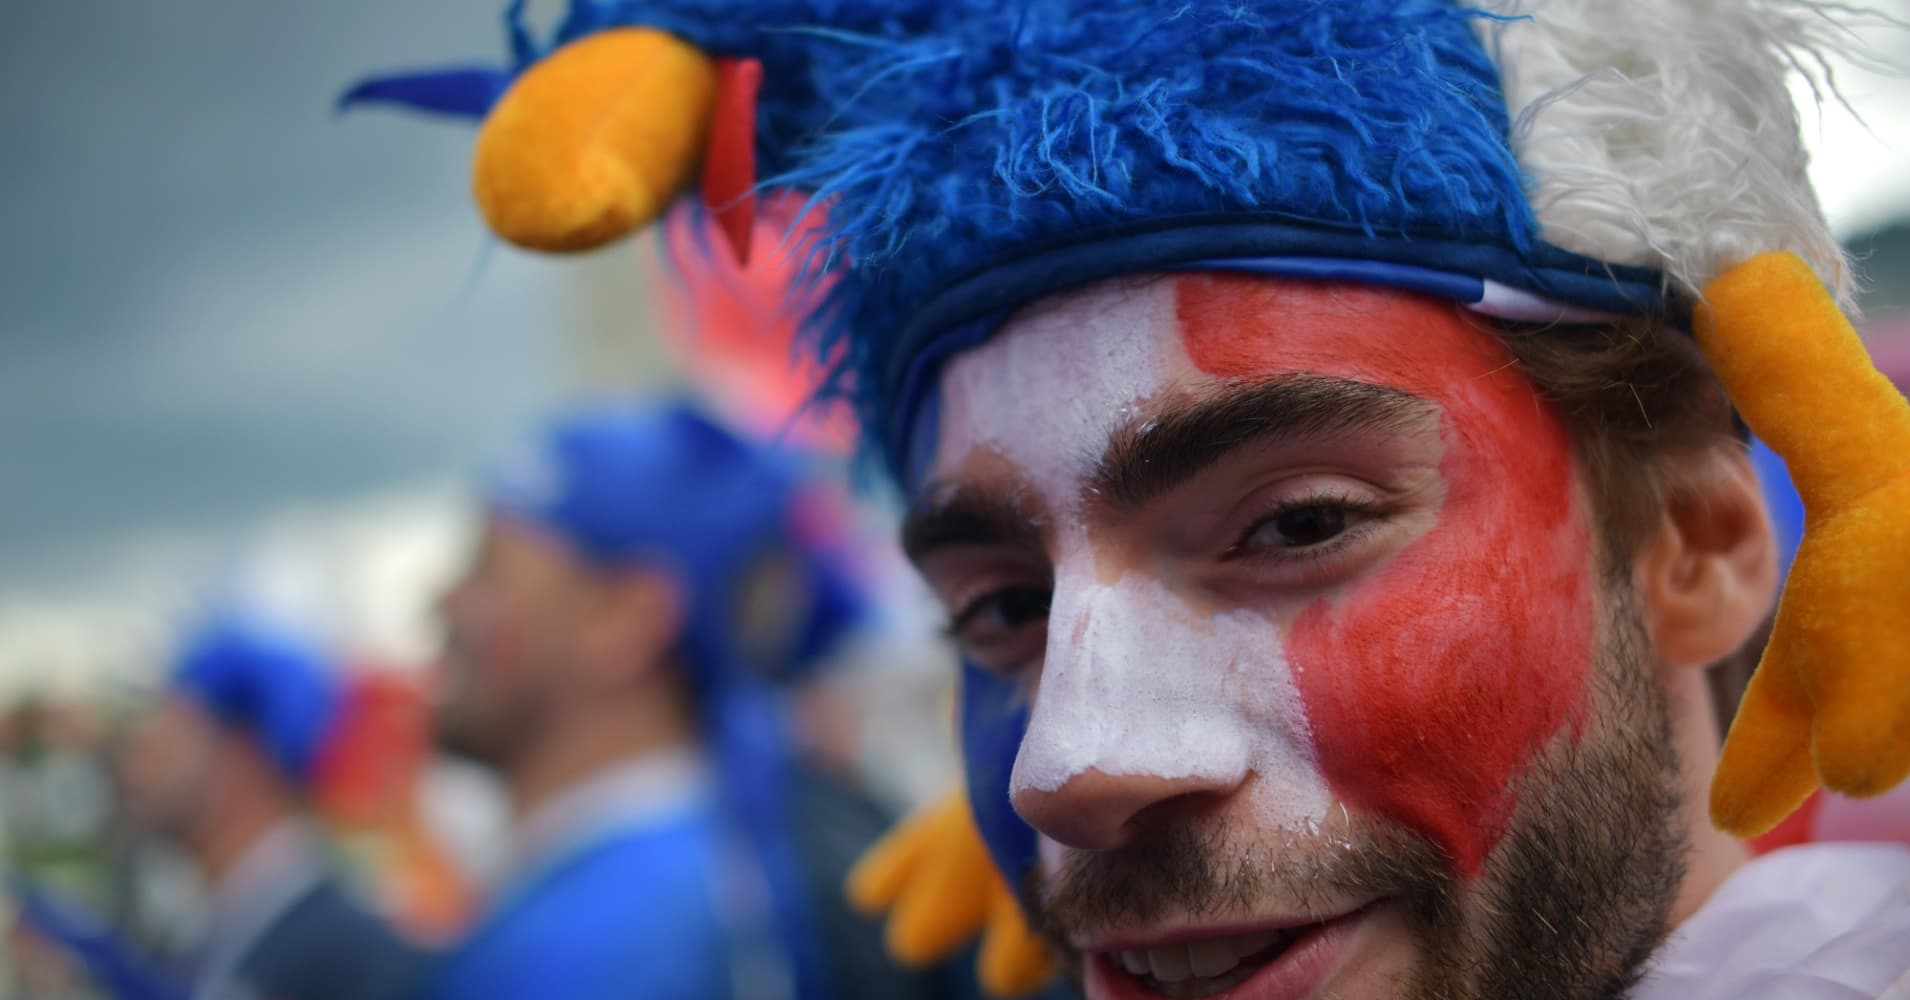 A France supporter cheers ahead of the Russia 2018 World Cup quarter-final football match between Uruguay and France.